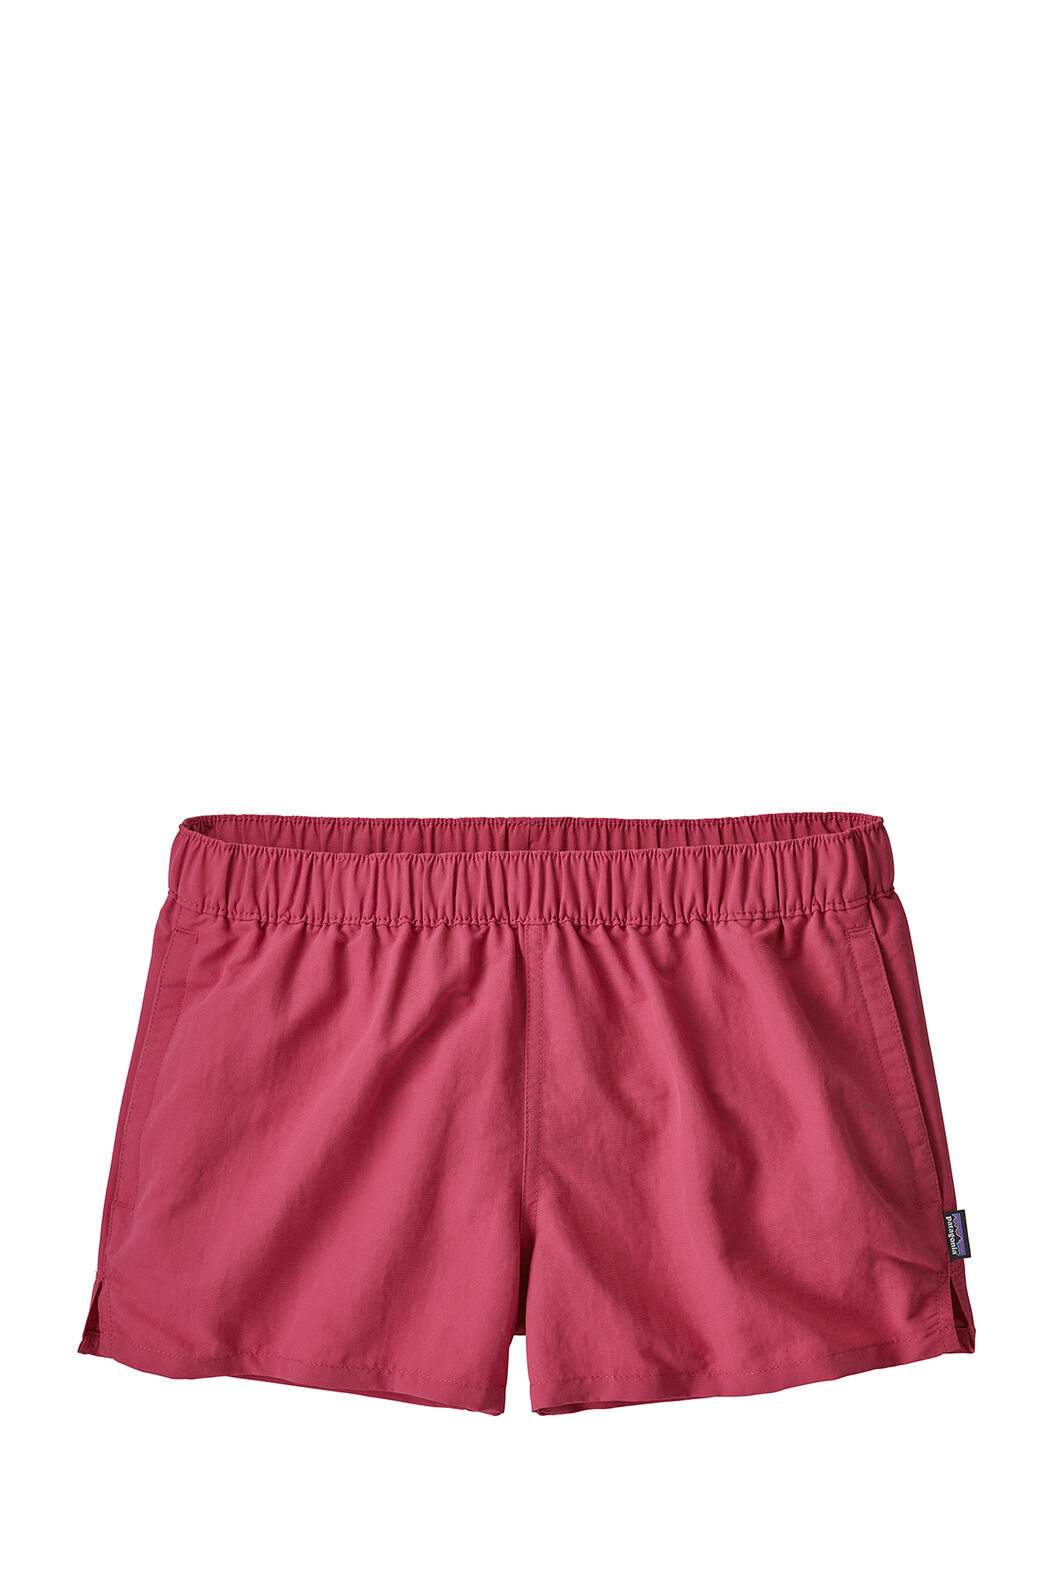 Patagonia Barely Baggies™ Shorts — Women's       , Reef Pink, hi-res